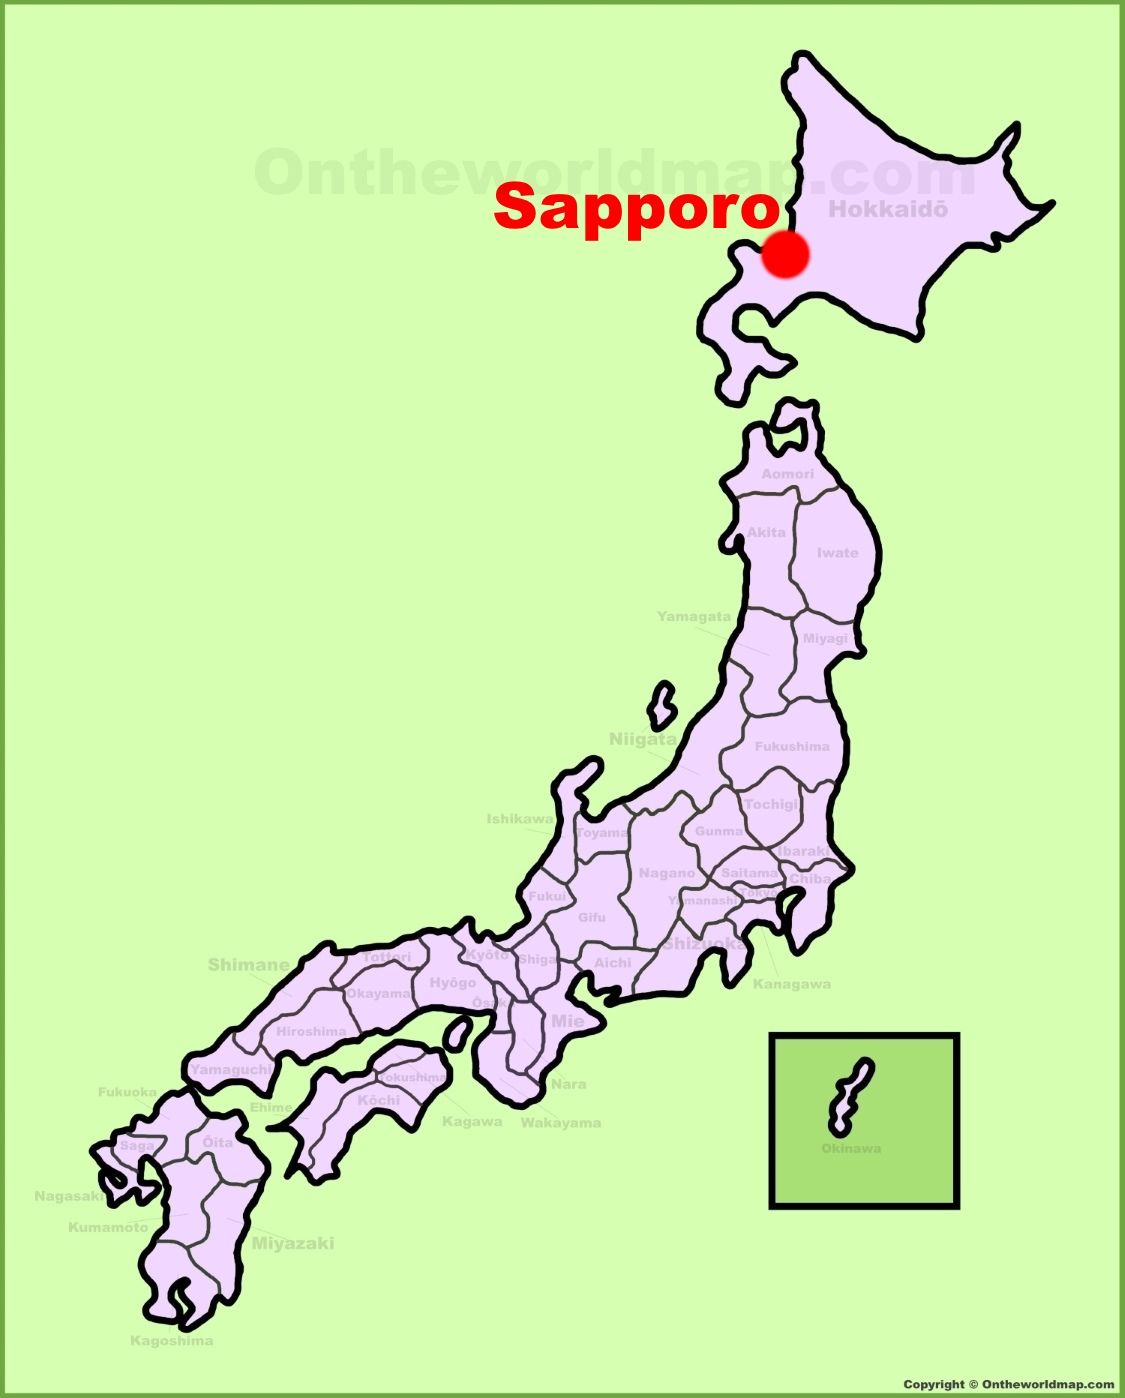 Sapporo location on the Japan Map